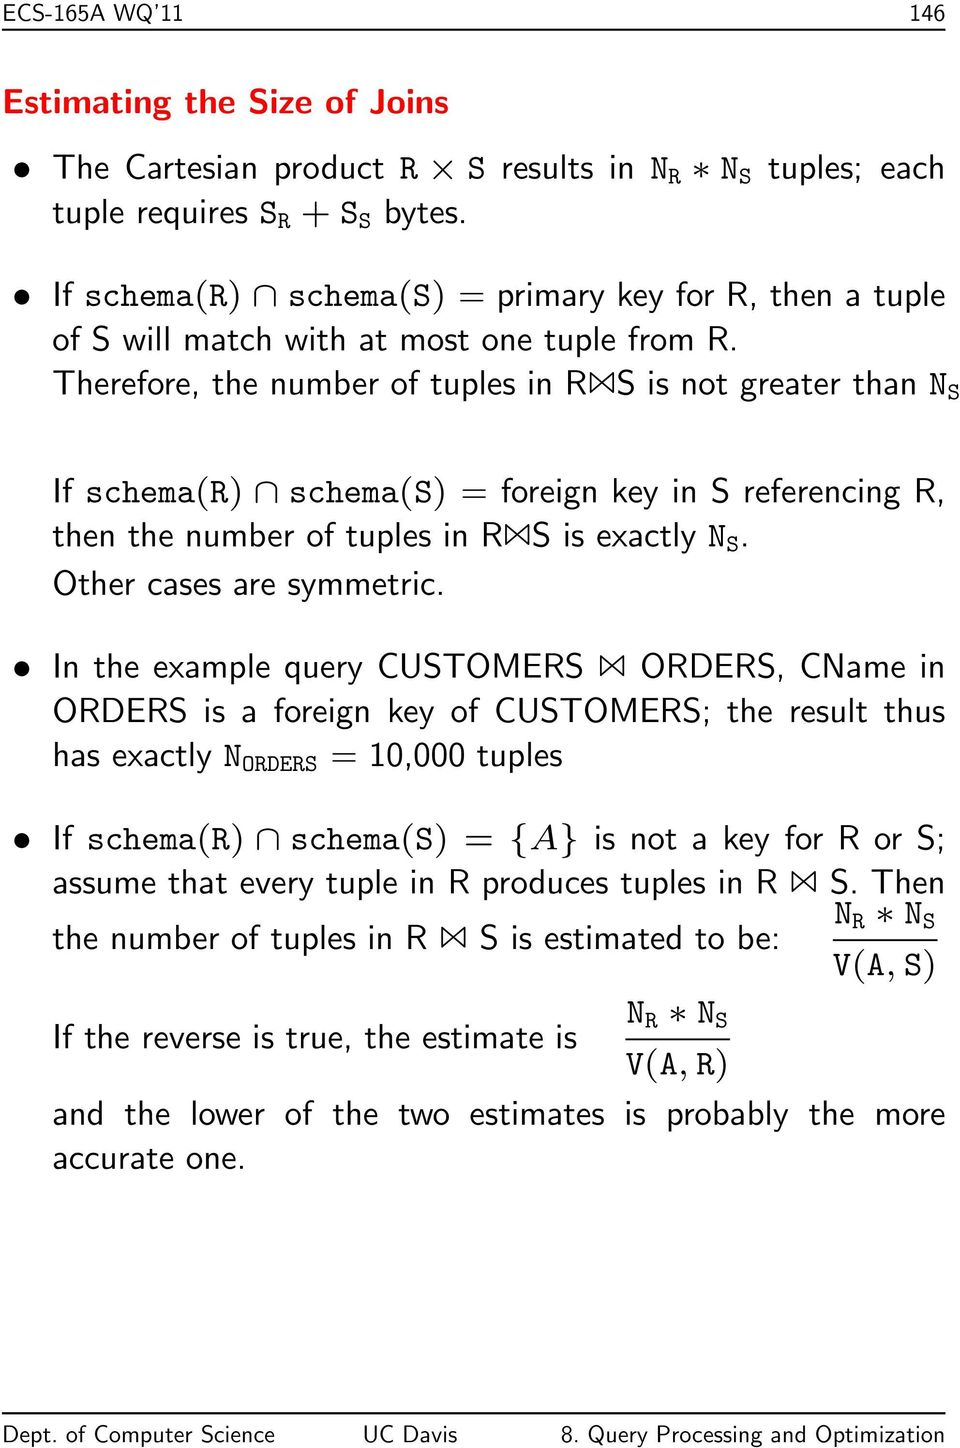 Therefore, the number of tuples in R S is not greater than N S If schema(r) schema(s) = foreign key in S referencing R, then the number of tuples in R S is exactly N S. Other cases are symmetric.